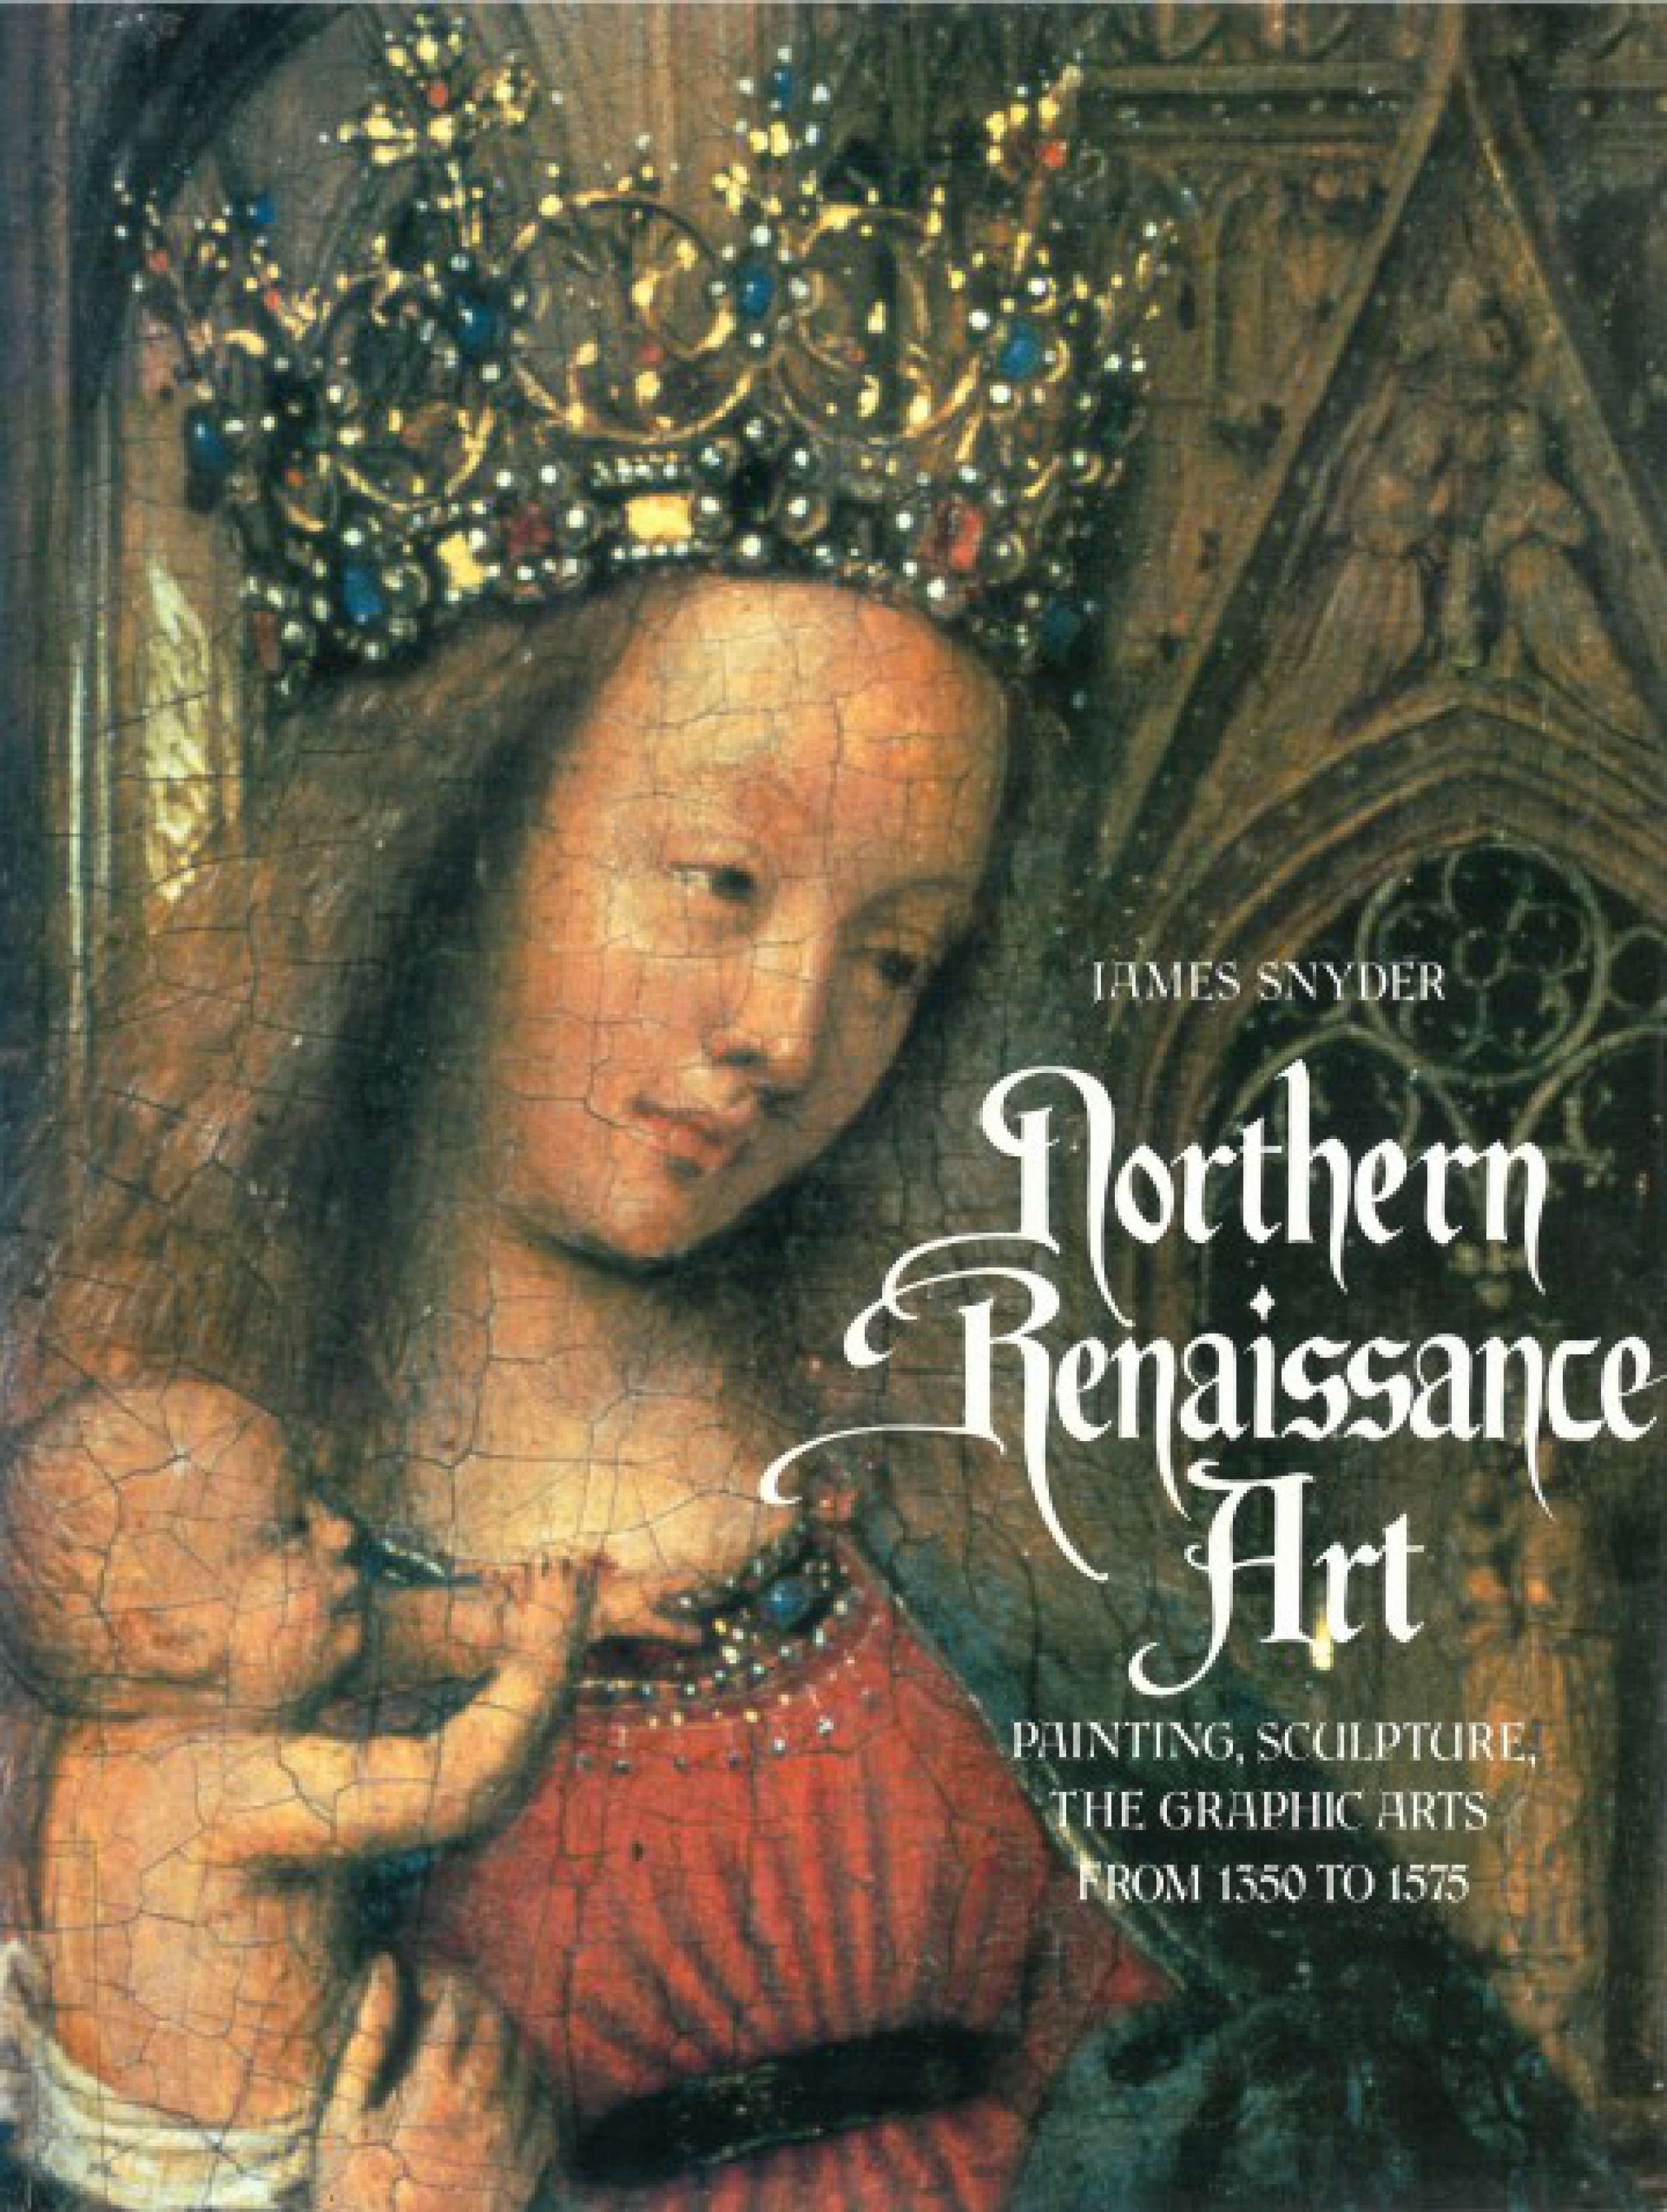 differences between northern renaissance art and The northern renaissance was germanic, dutch & flemish the italian was well, italian much art in the northern renaissance boasted many biblical images, whereas the art of the italian renaissance consisted of biblical as well as great deal of roman mythological images.